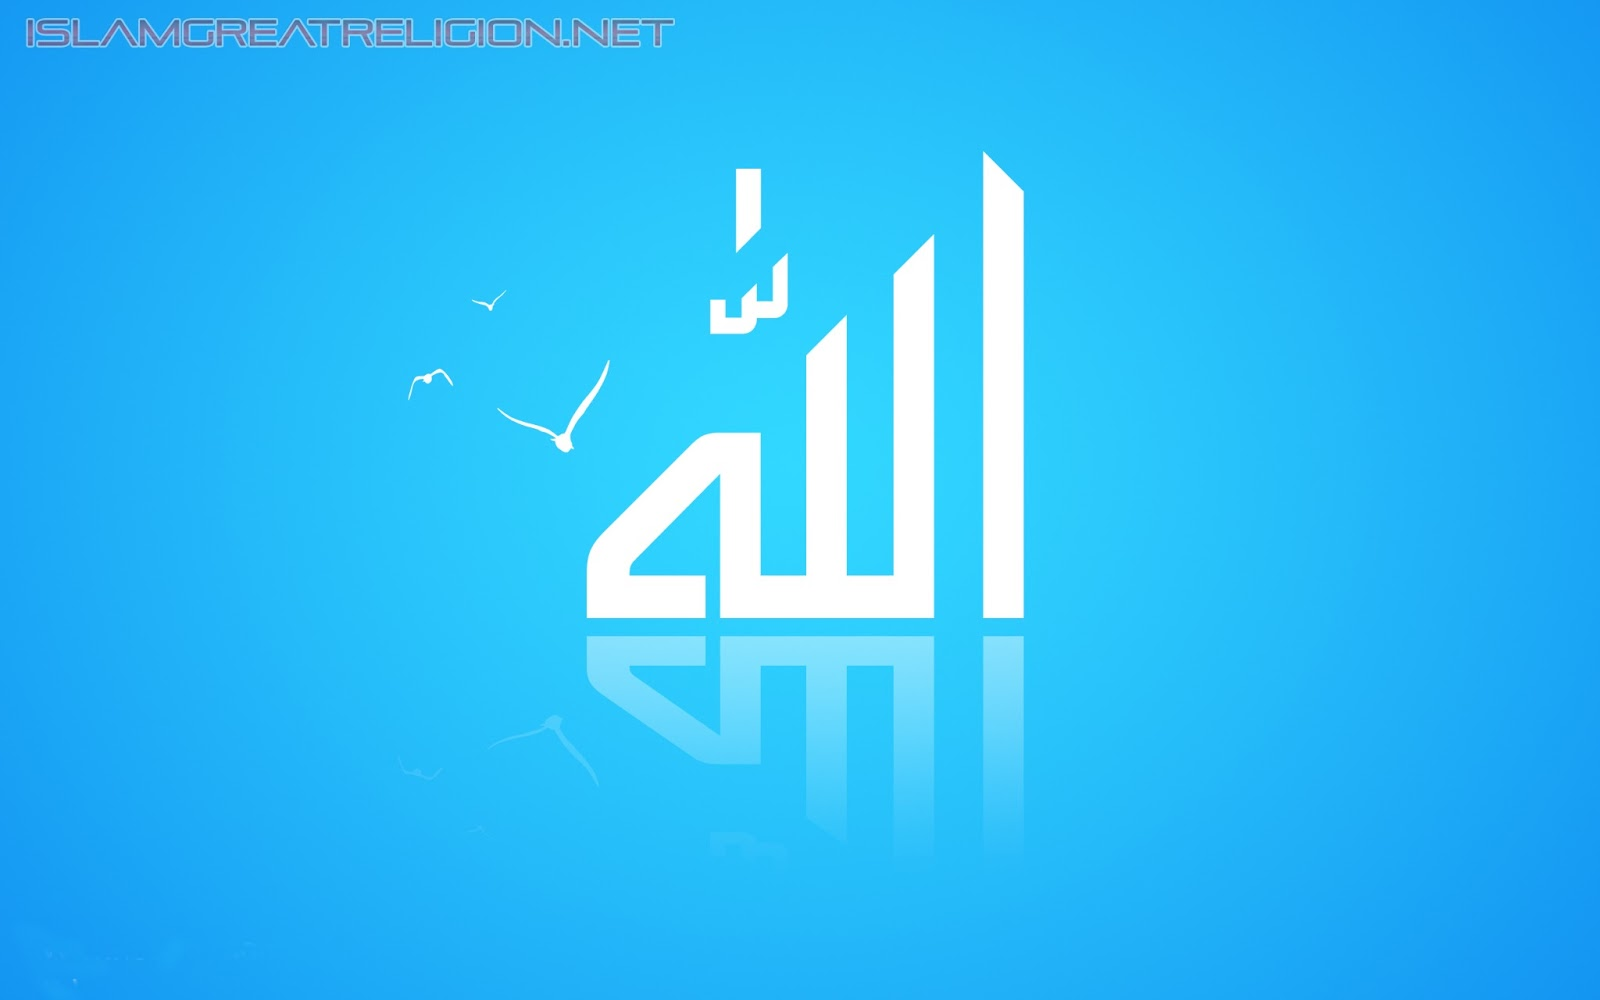 pdf download site names of allah video song